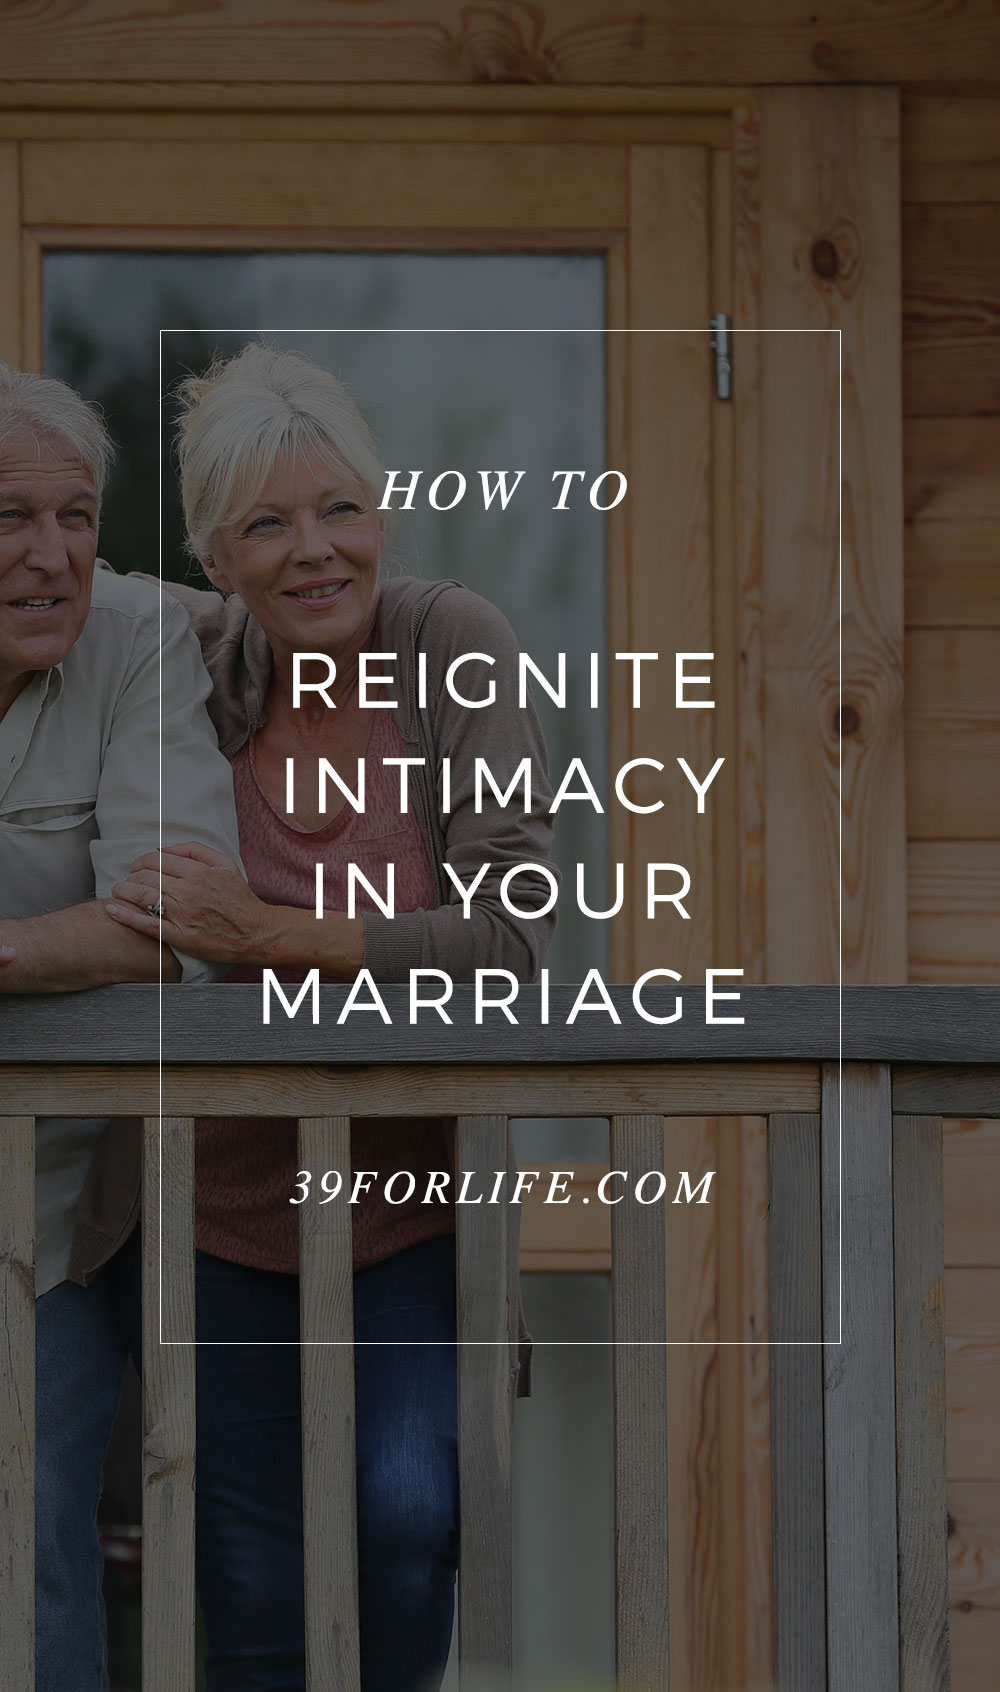 All relationships go through ups and downs. Here's how to reignite intimacy and passion in your relationship again.